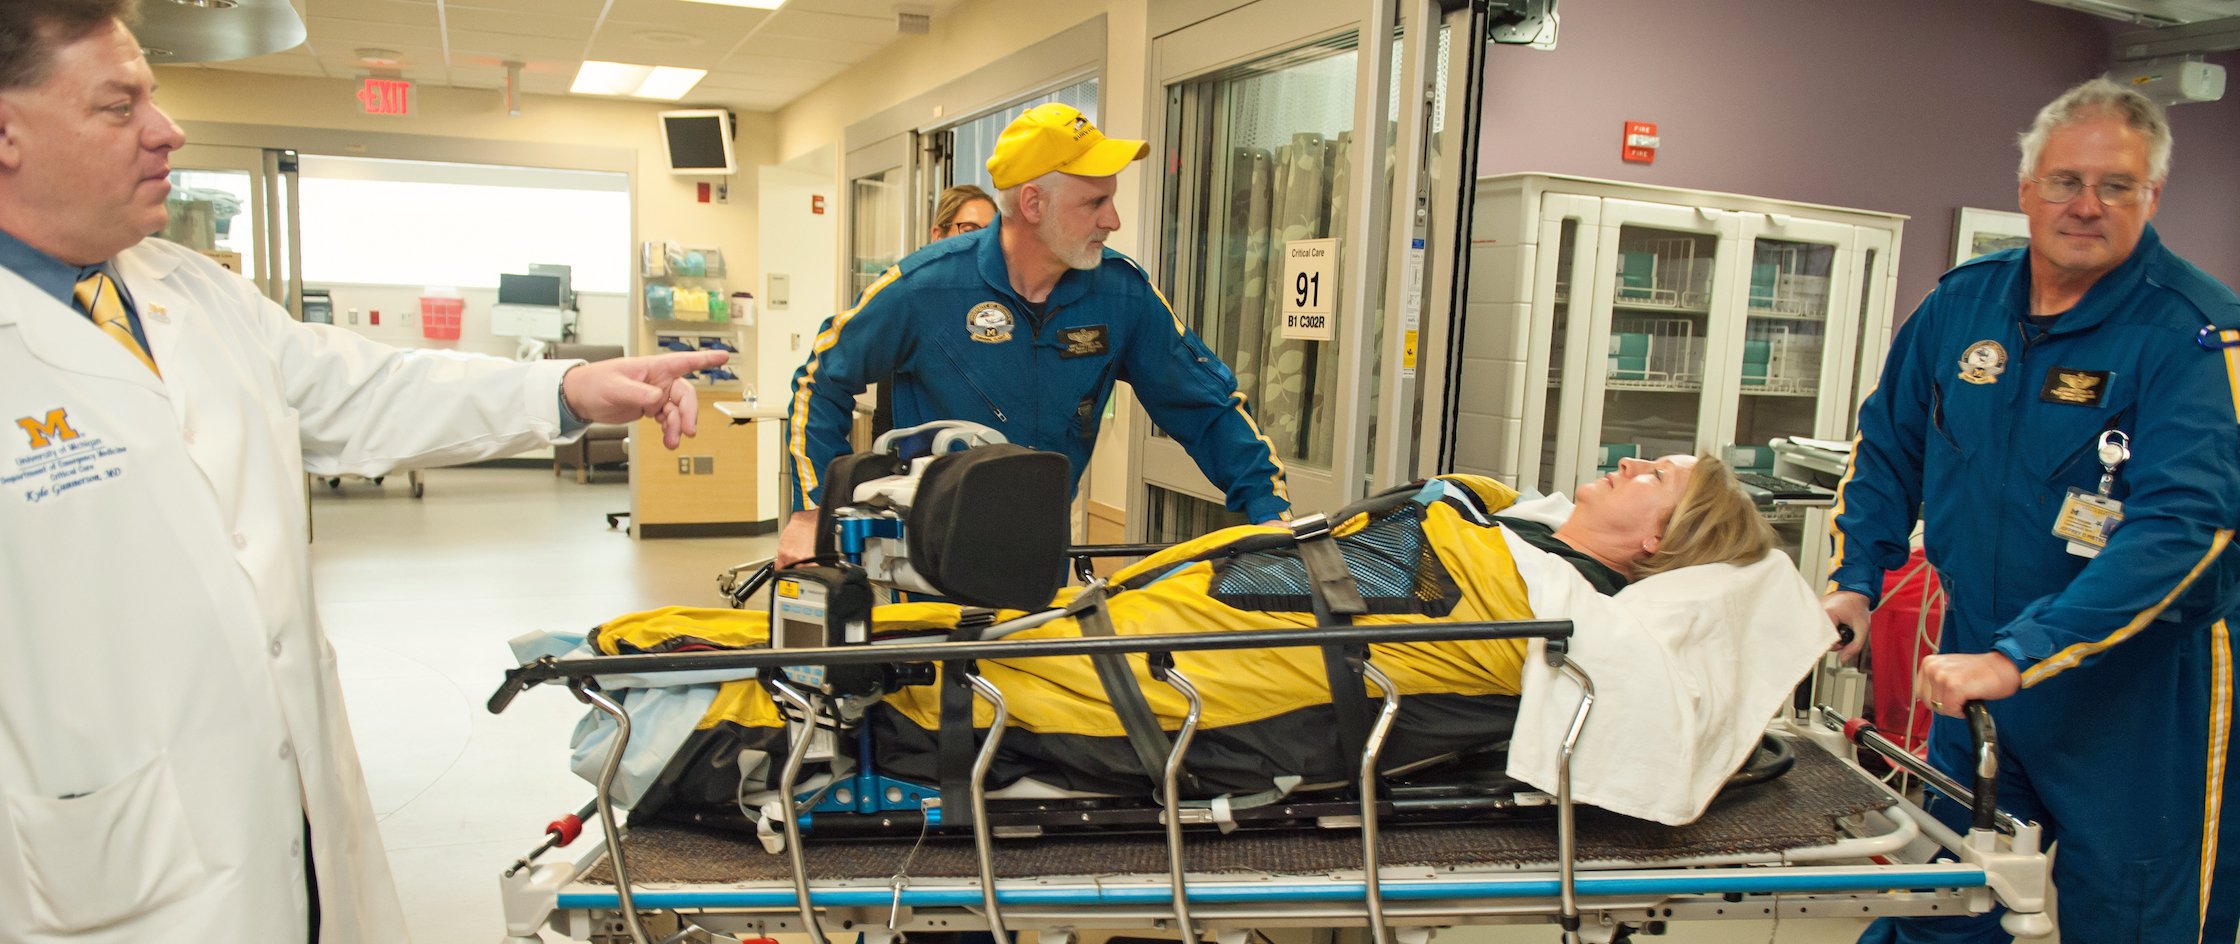 Emergency room critical care team with patient on stretcher